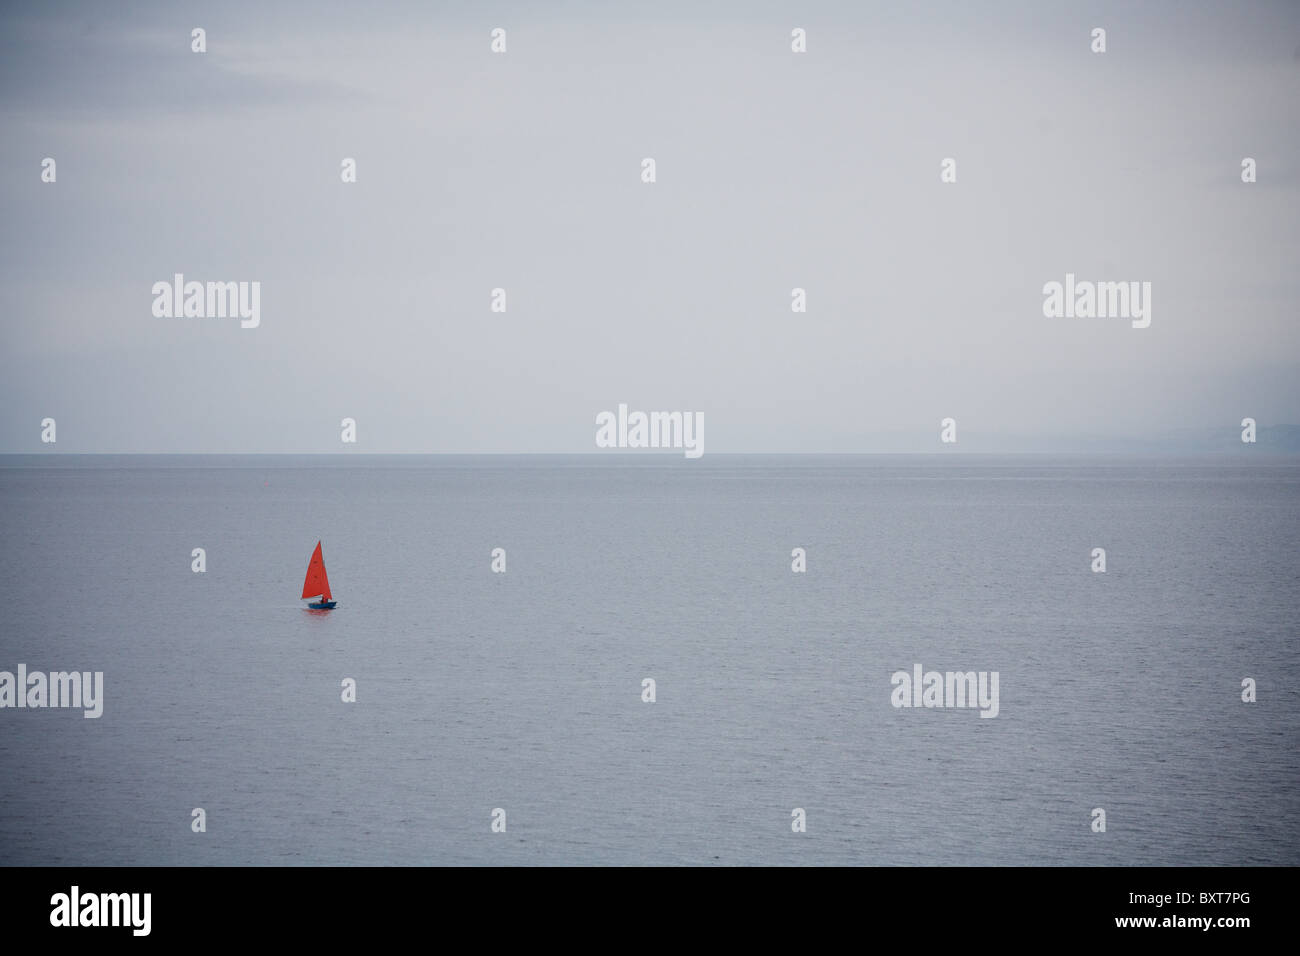 Sailing boat with red sail, sailing off the coast at Big Sand, Gairloch. - Stock Image